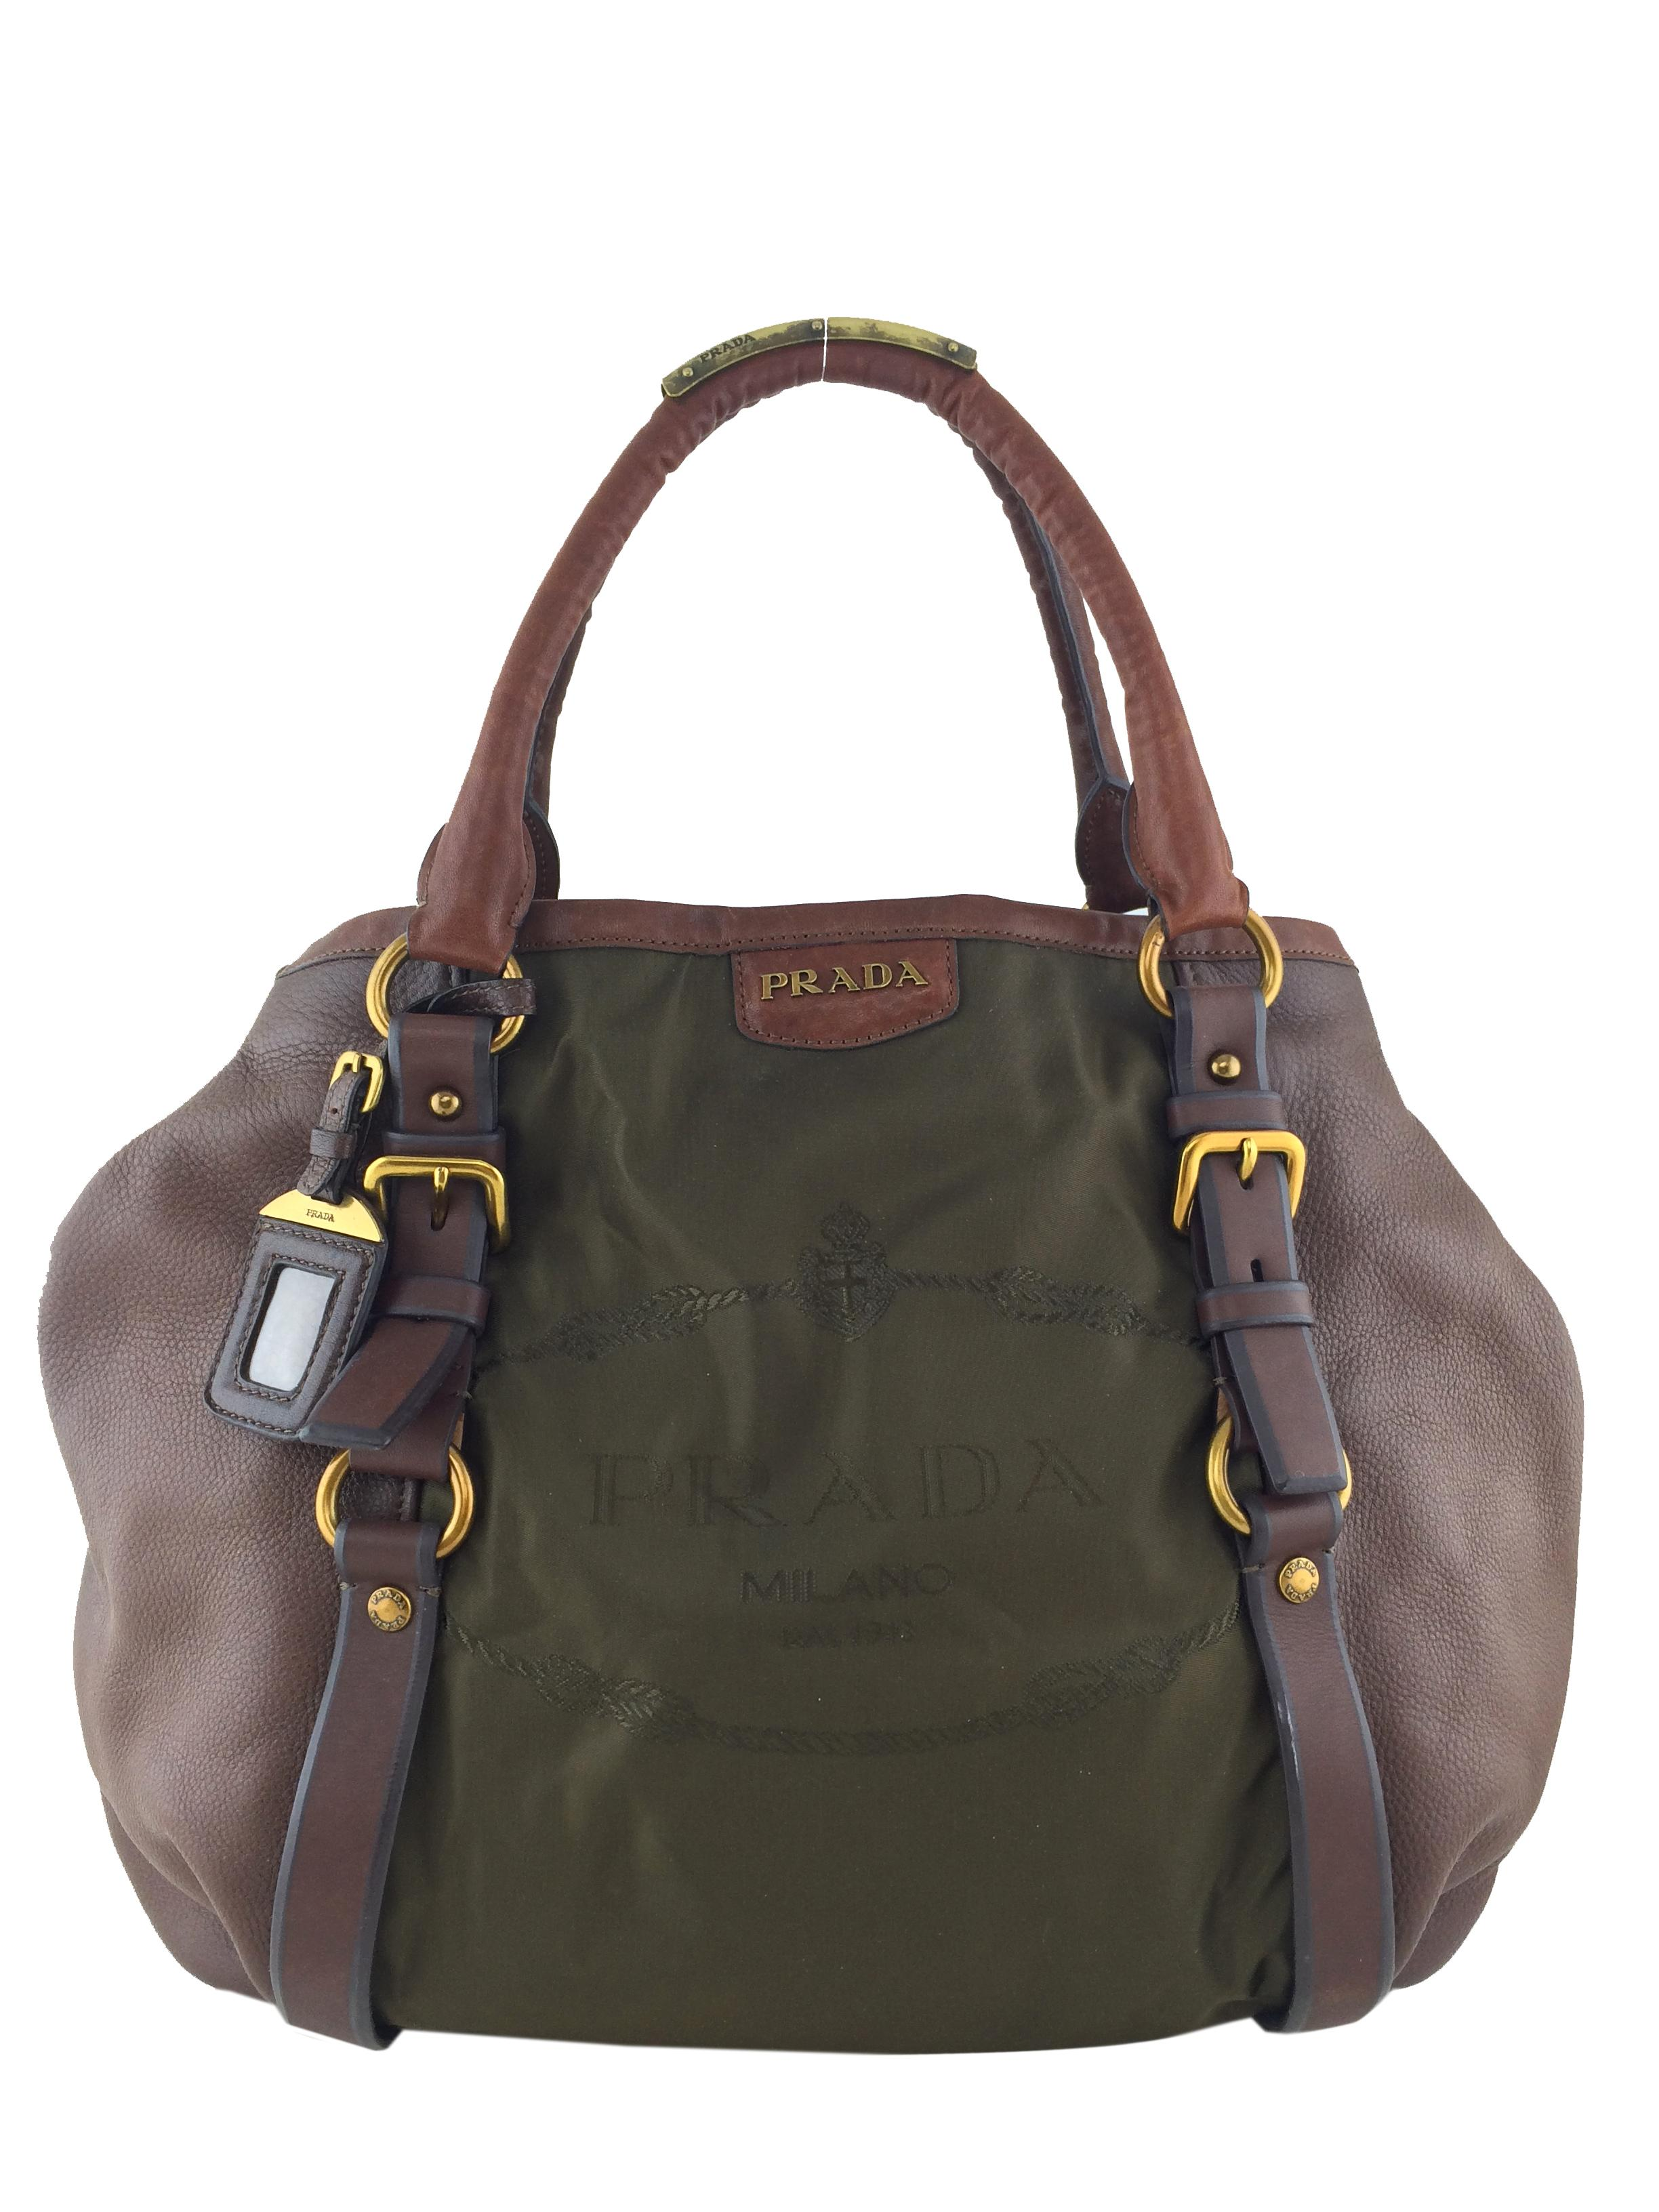 5da985cf2128 ... amazon prada jacquard logo olive green nylon hobo bag tradesy 0db2b  90ca0